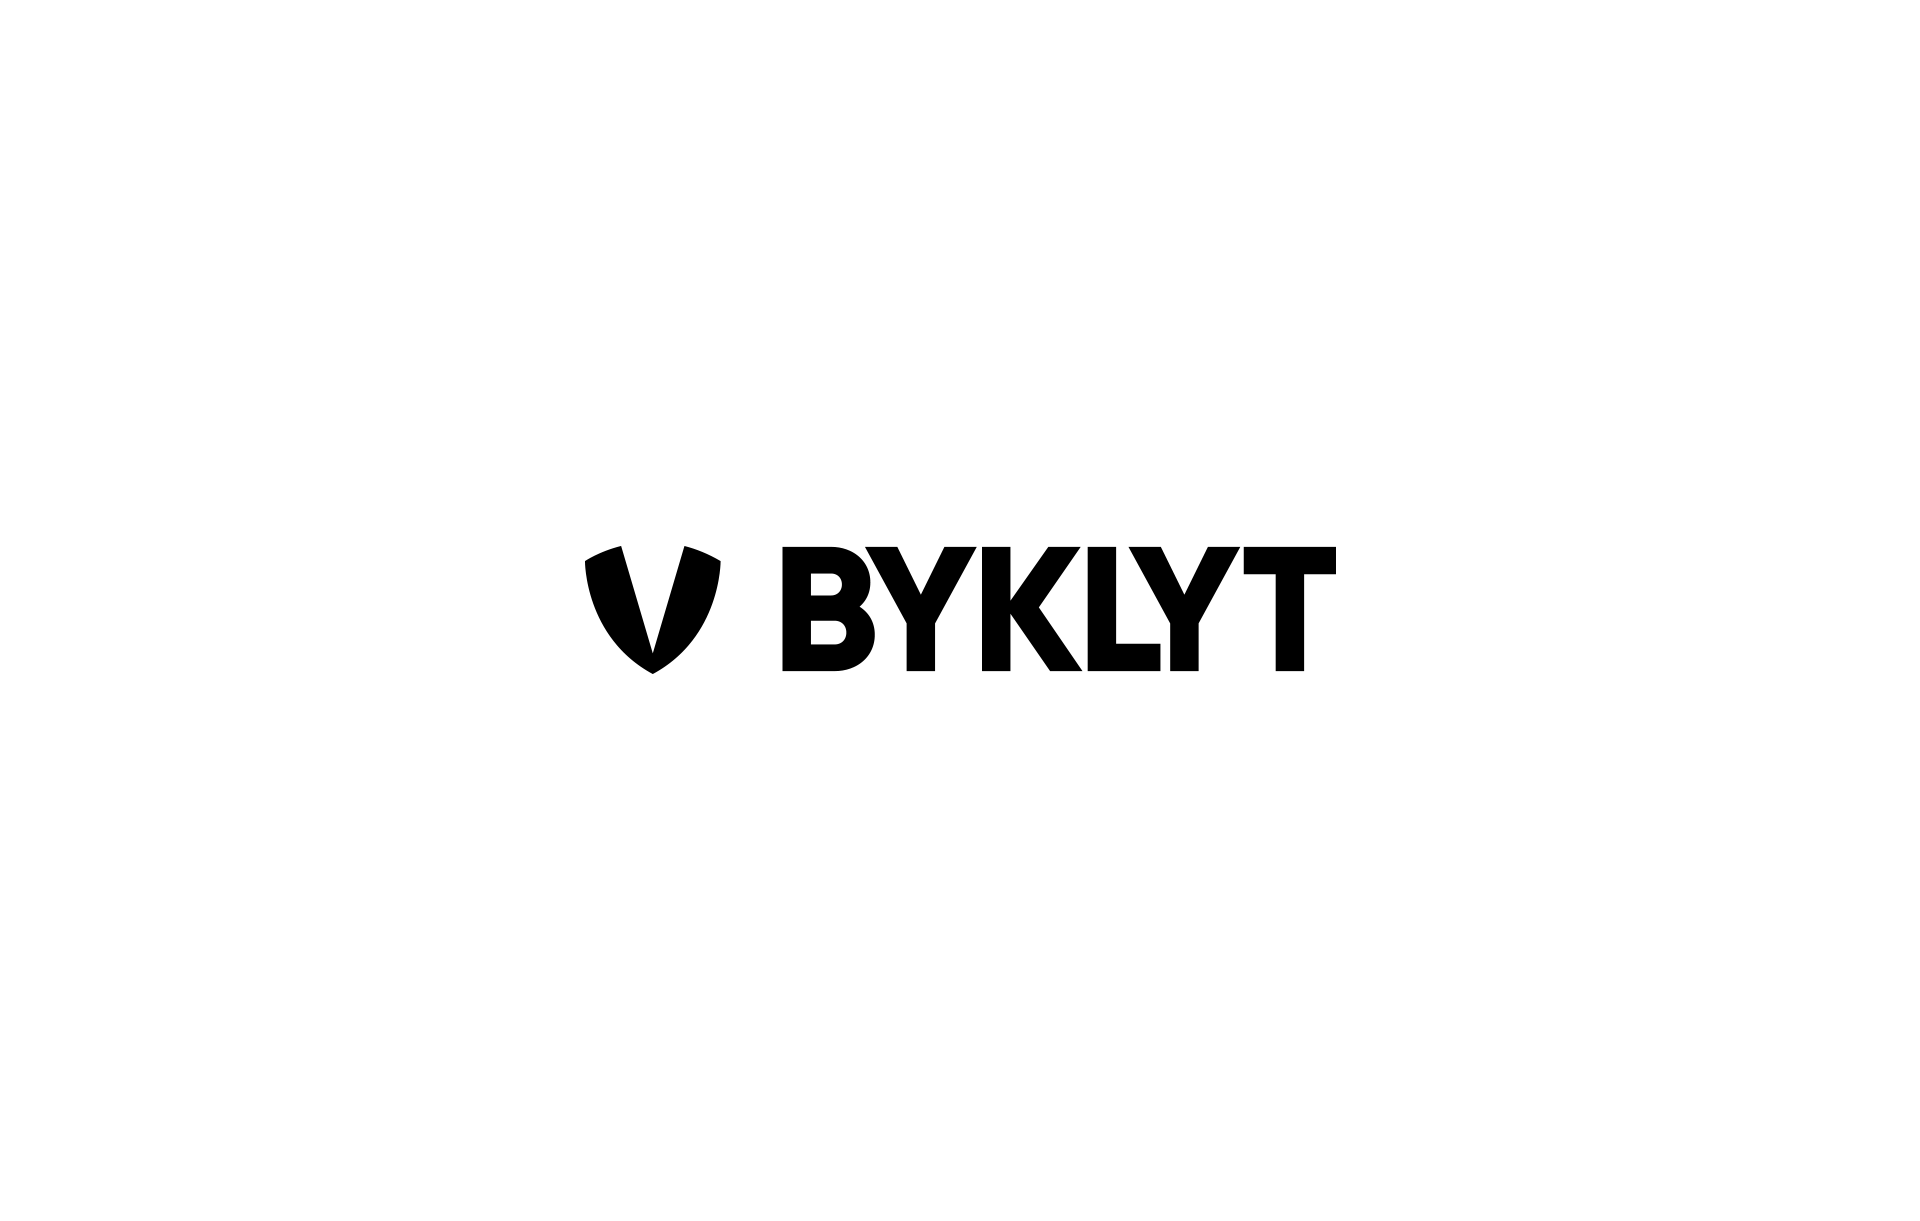 BYKLYT Logo Design By Scott Luscombe